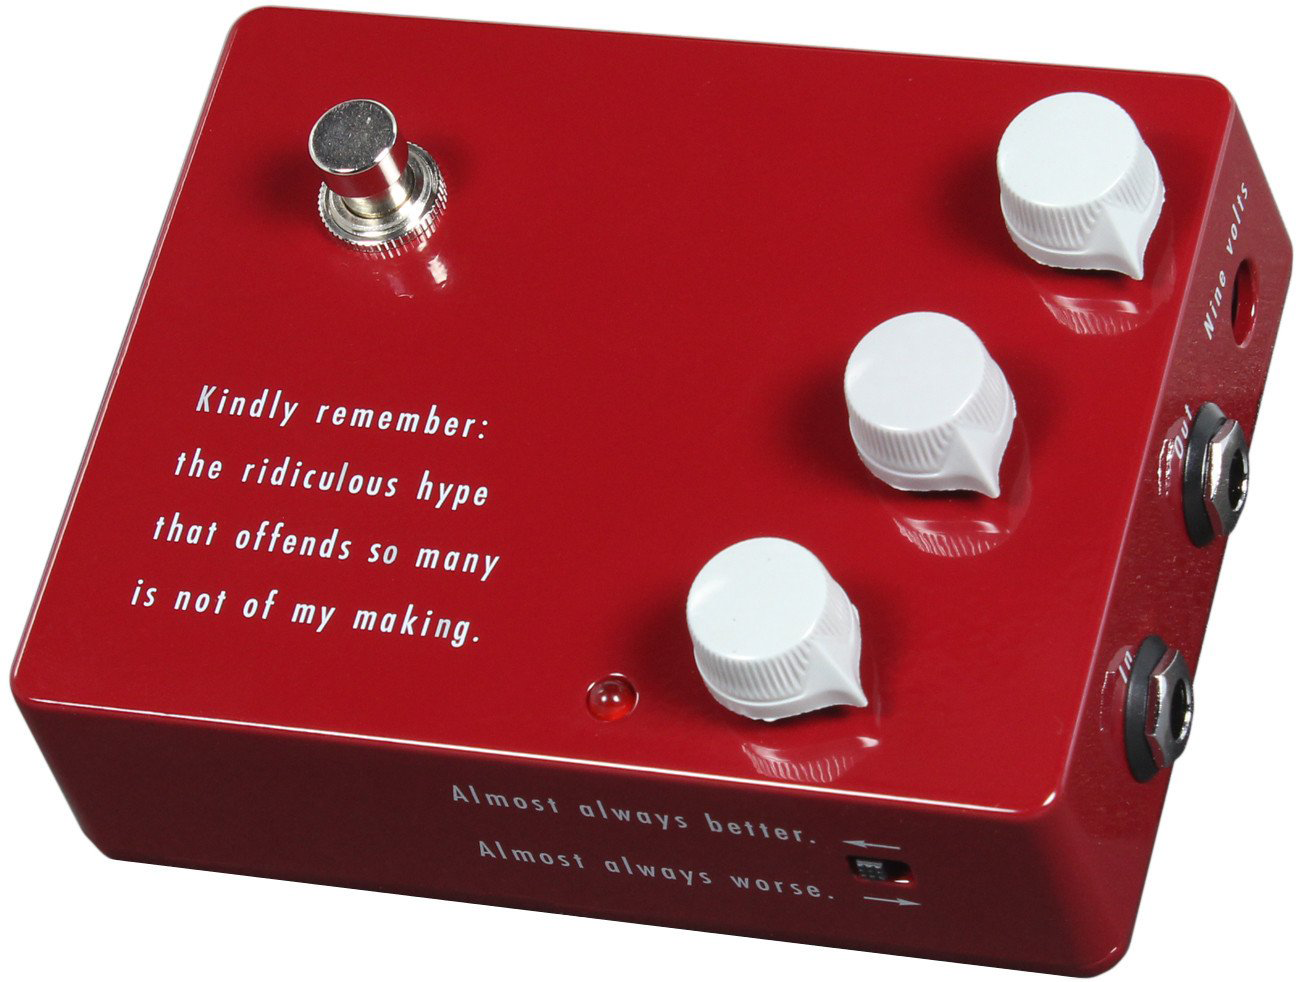 Official Klon Ktr Professional Overdrive Pedal The (revised) legendary Klon Centaur Boost/OD that has captured the gearheads imagination for the last 20 years, is finally available to the masses!  100% designed by Bill Finnegan!  Possessing truly legendary tone, the Klon KTR is a modern masterpiece that has completely transformed what guitarists all over the world have come to expect from this Left-to-right, the controls are Gain, Treble, and Output.  The Gain setting determines how much or how little distortion the unit is generating on its own, Treble and Output are self-explanatory.  For aesthetic reasons it mode no sense to include the control designations as part of the screen printing on the unit,* but here is a useful mnemonic device: GIG.